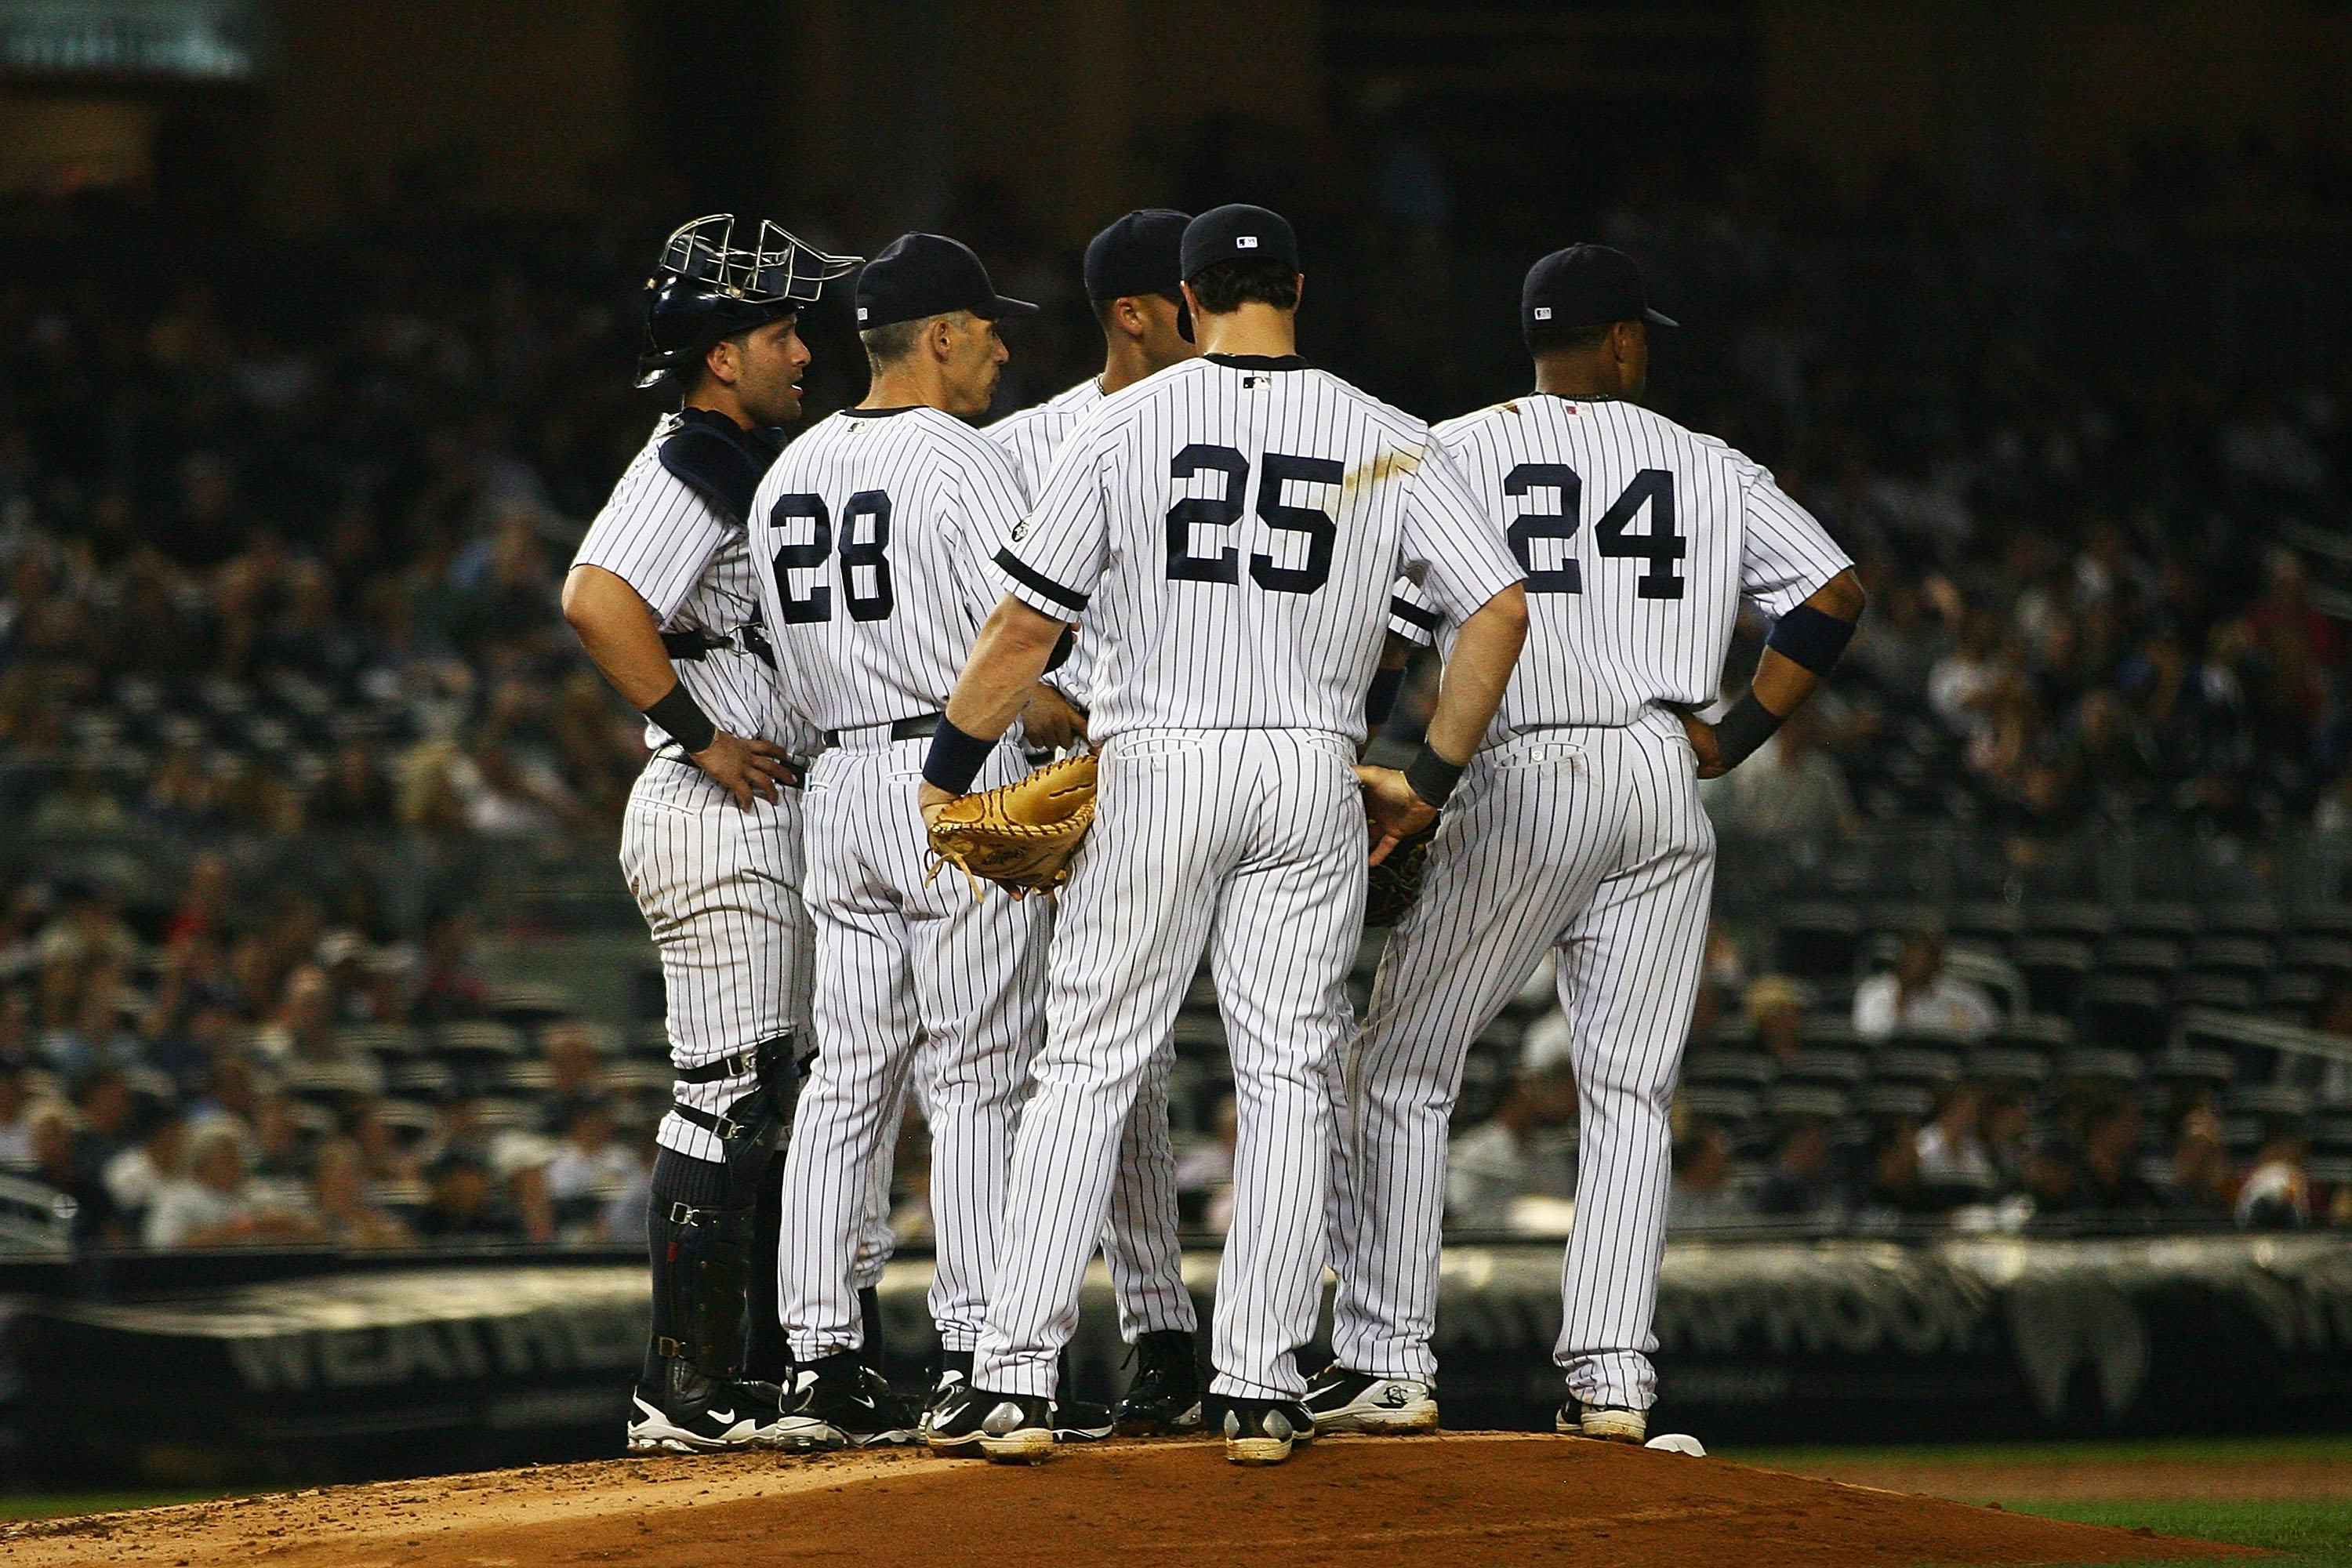 NEW YORK - SEPTEMBER 22:  The New York Yankees hold a team meeting on the mound during a game against the Tampa Bay Rays on September 22, 2010 at Yankee Stadium in the Bronx borough of New York City.  (Photo by Andrew Burton/Getty Images)